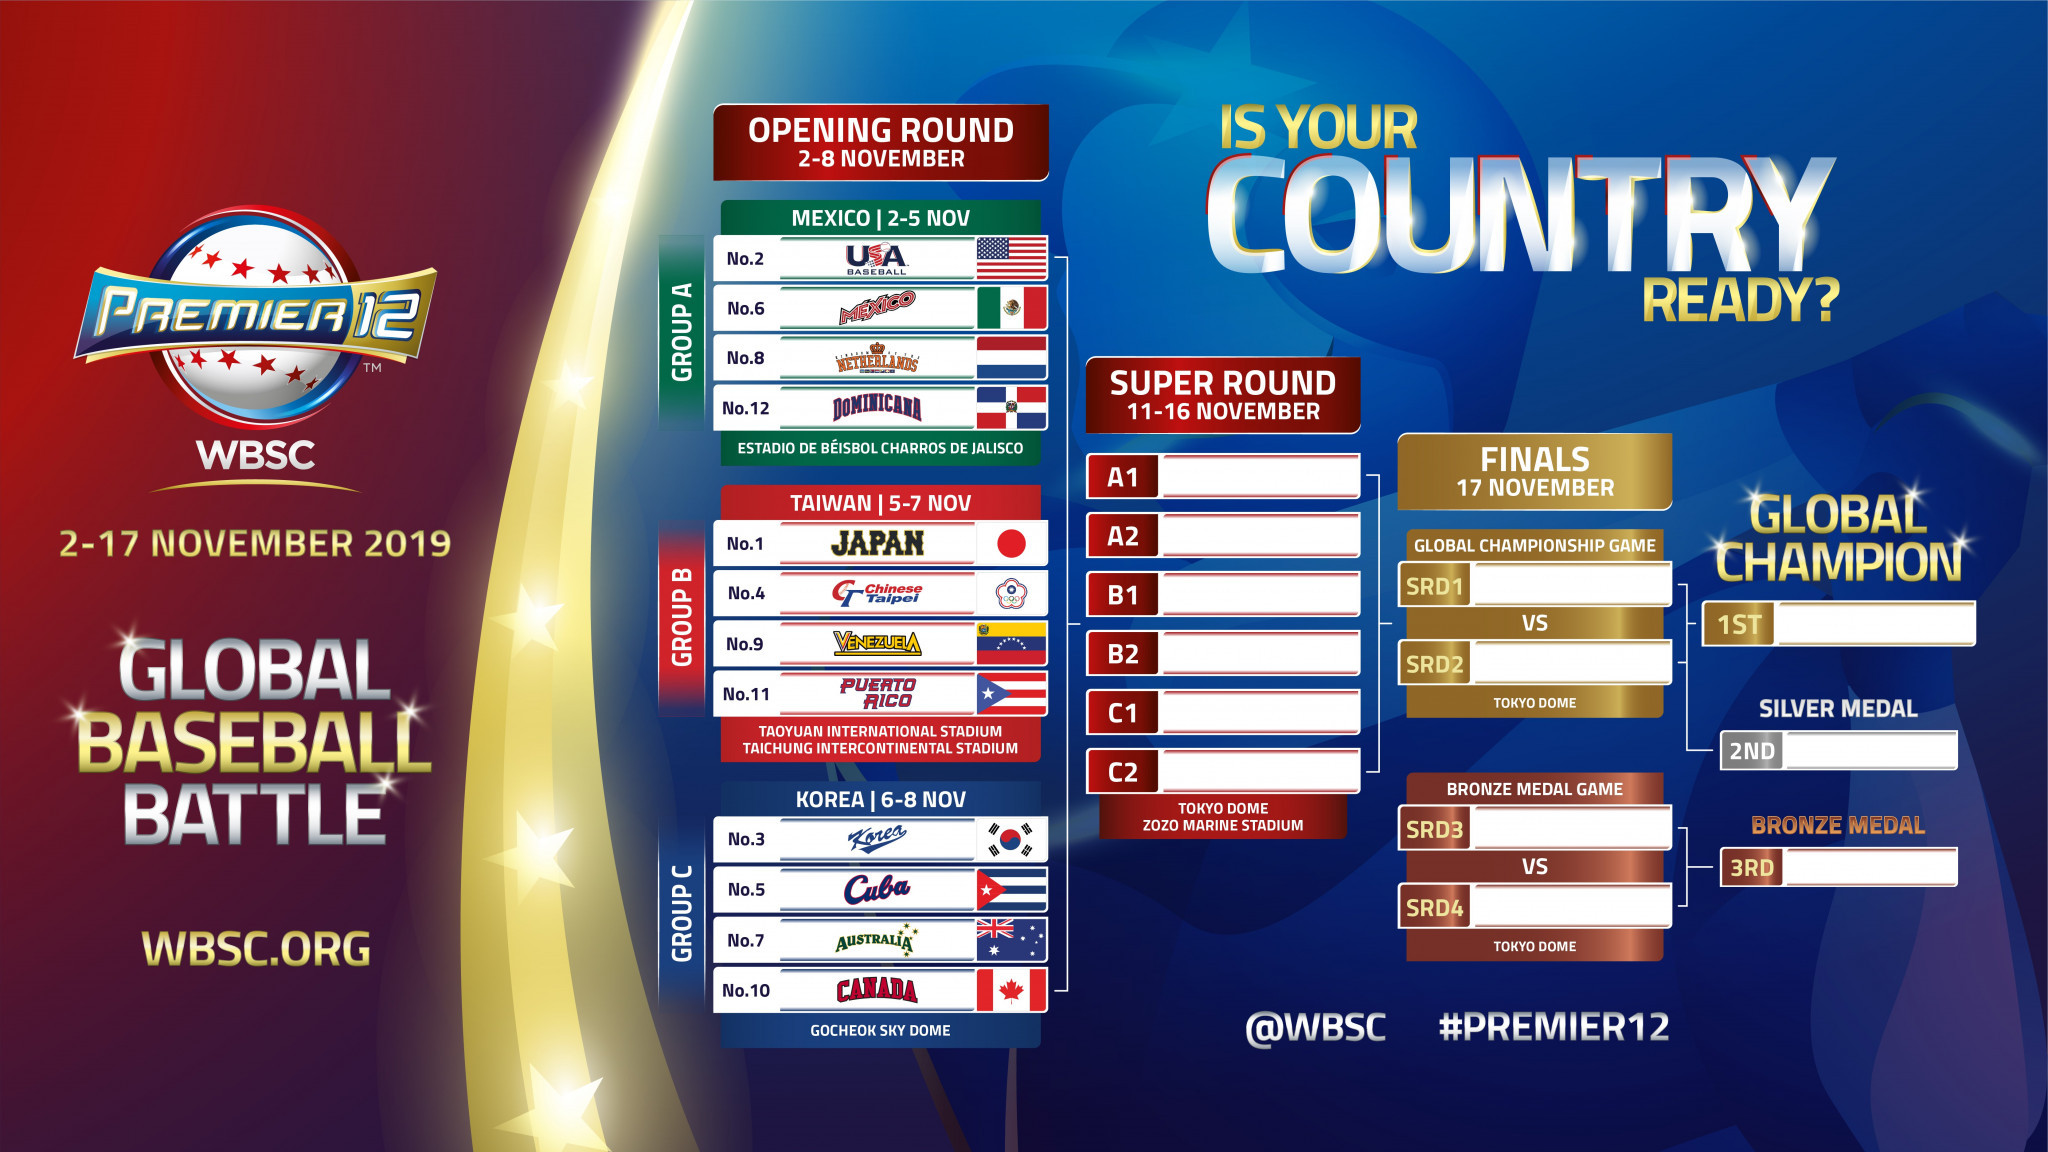 WBSC announce increased prize purse for Premier12